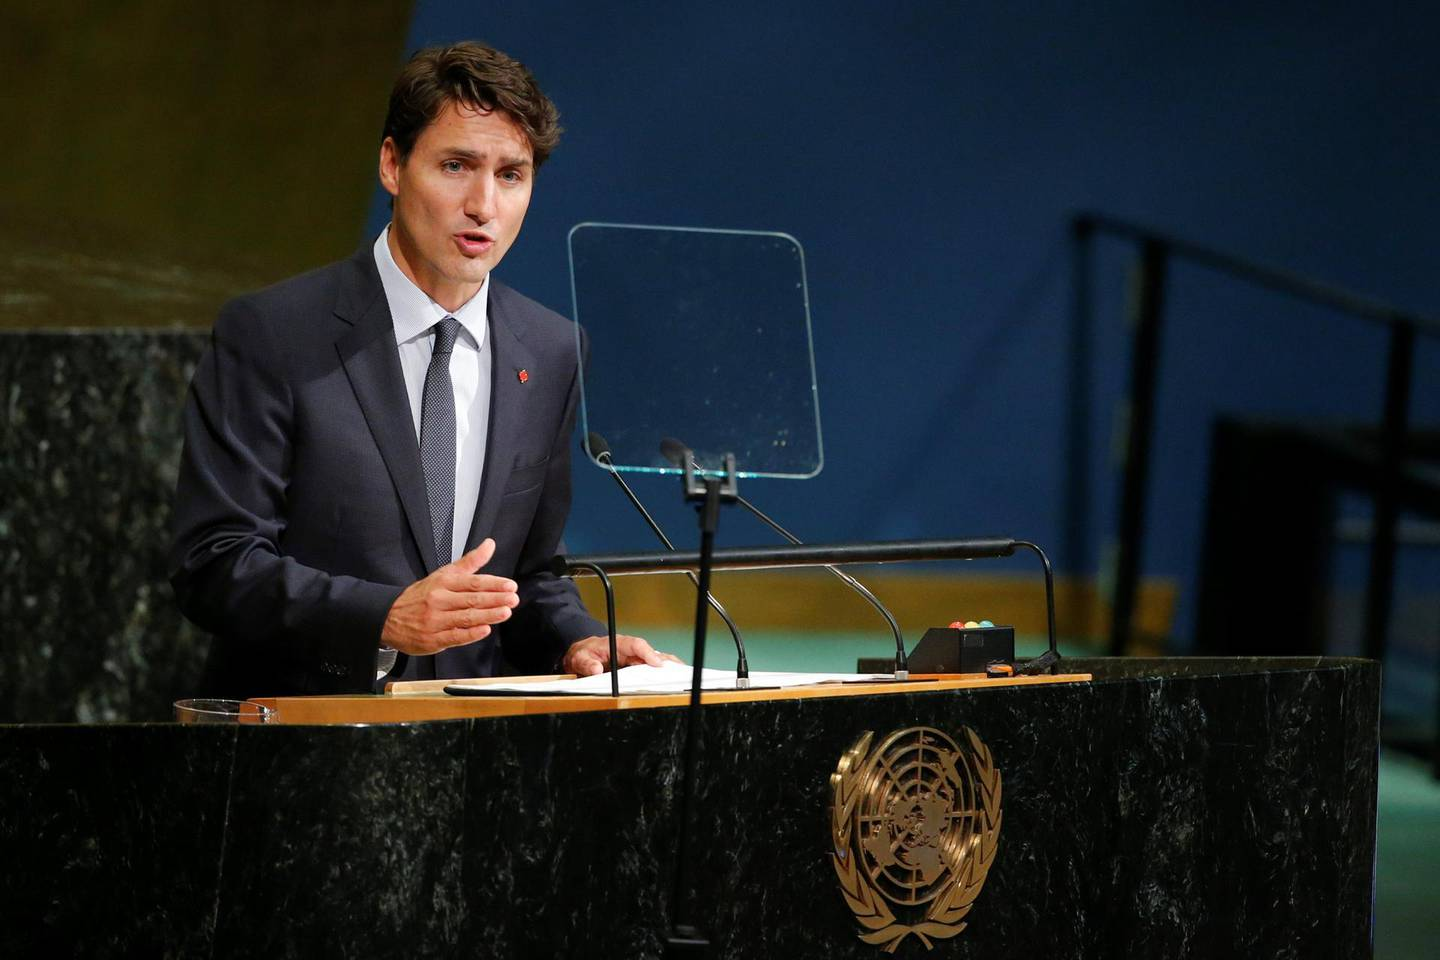 Canadian Prime Minister, Justin Trudeau, addresses the 72nd United Nations General Assembly at U.N. headquarters in New York, U.S., September 21, 2017. REUTERS/Eduardo Munoz